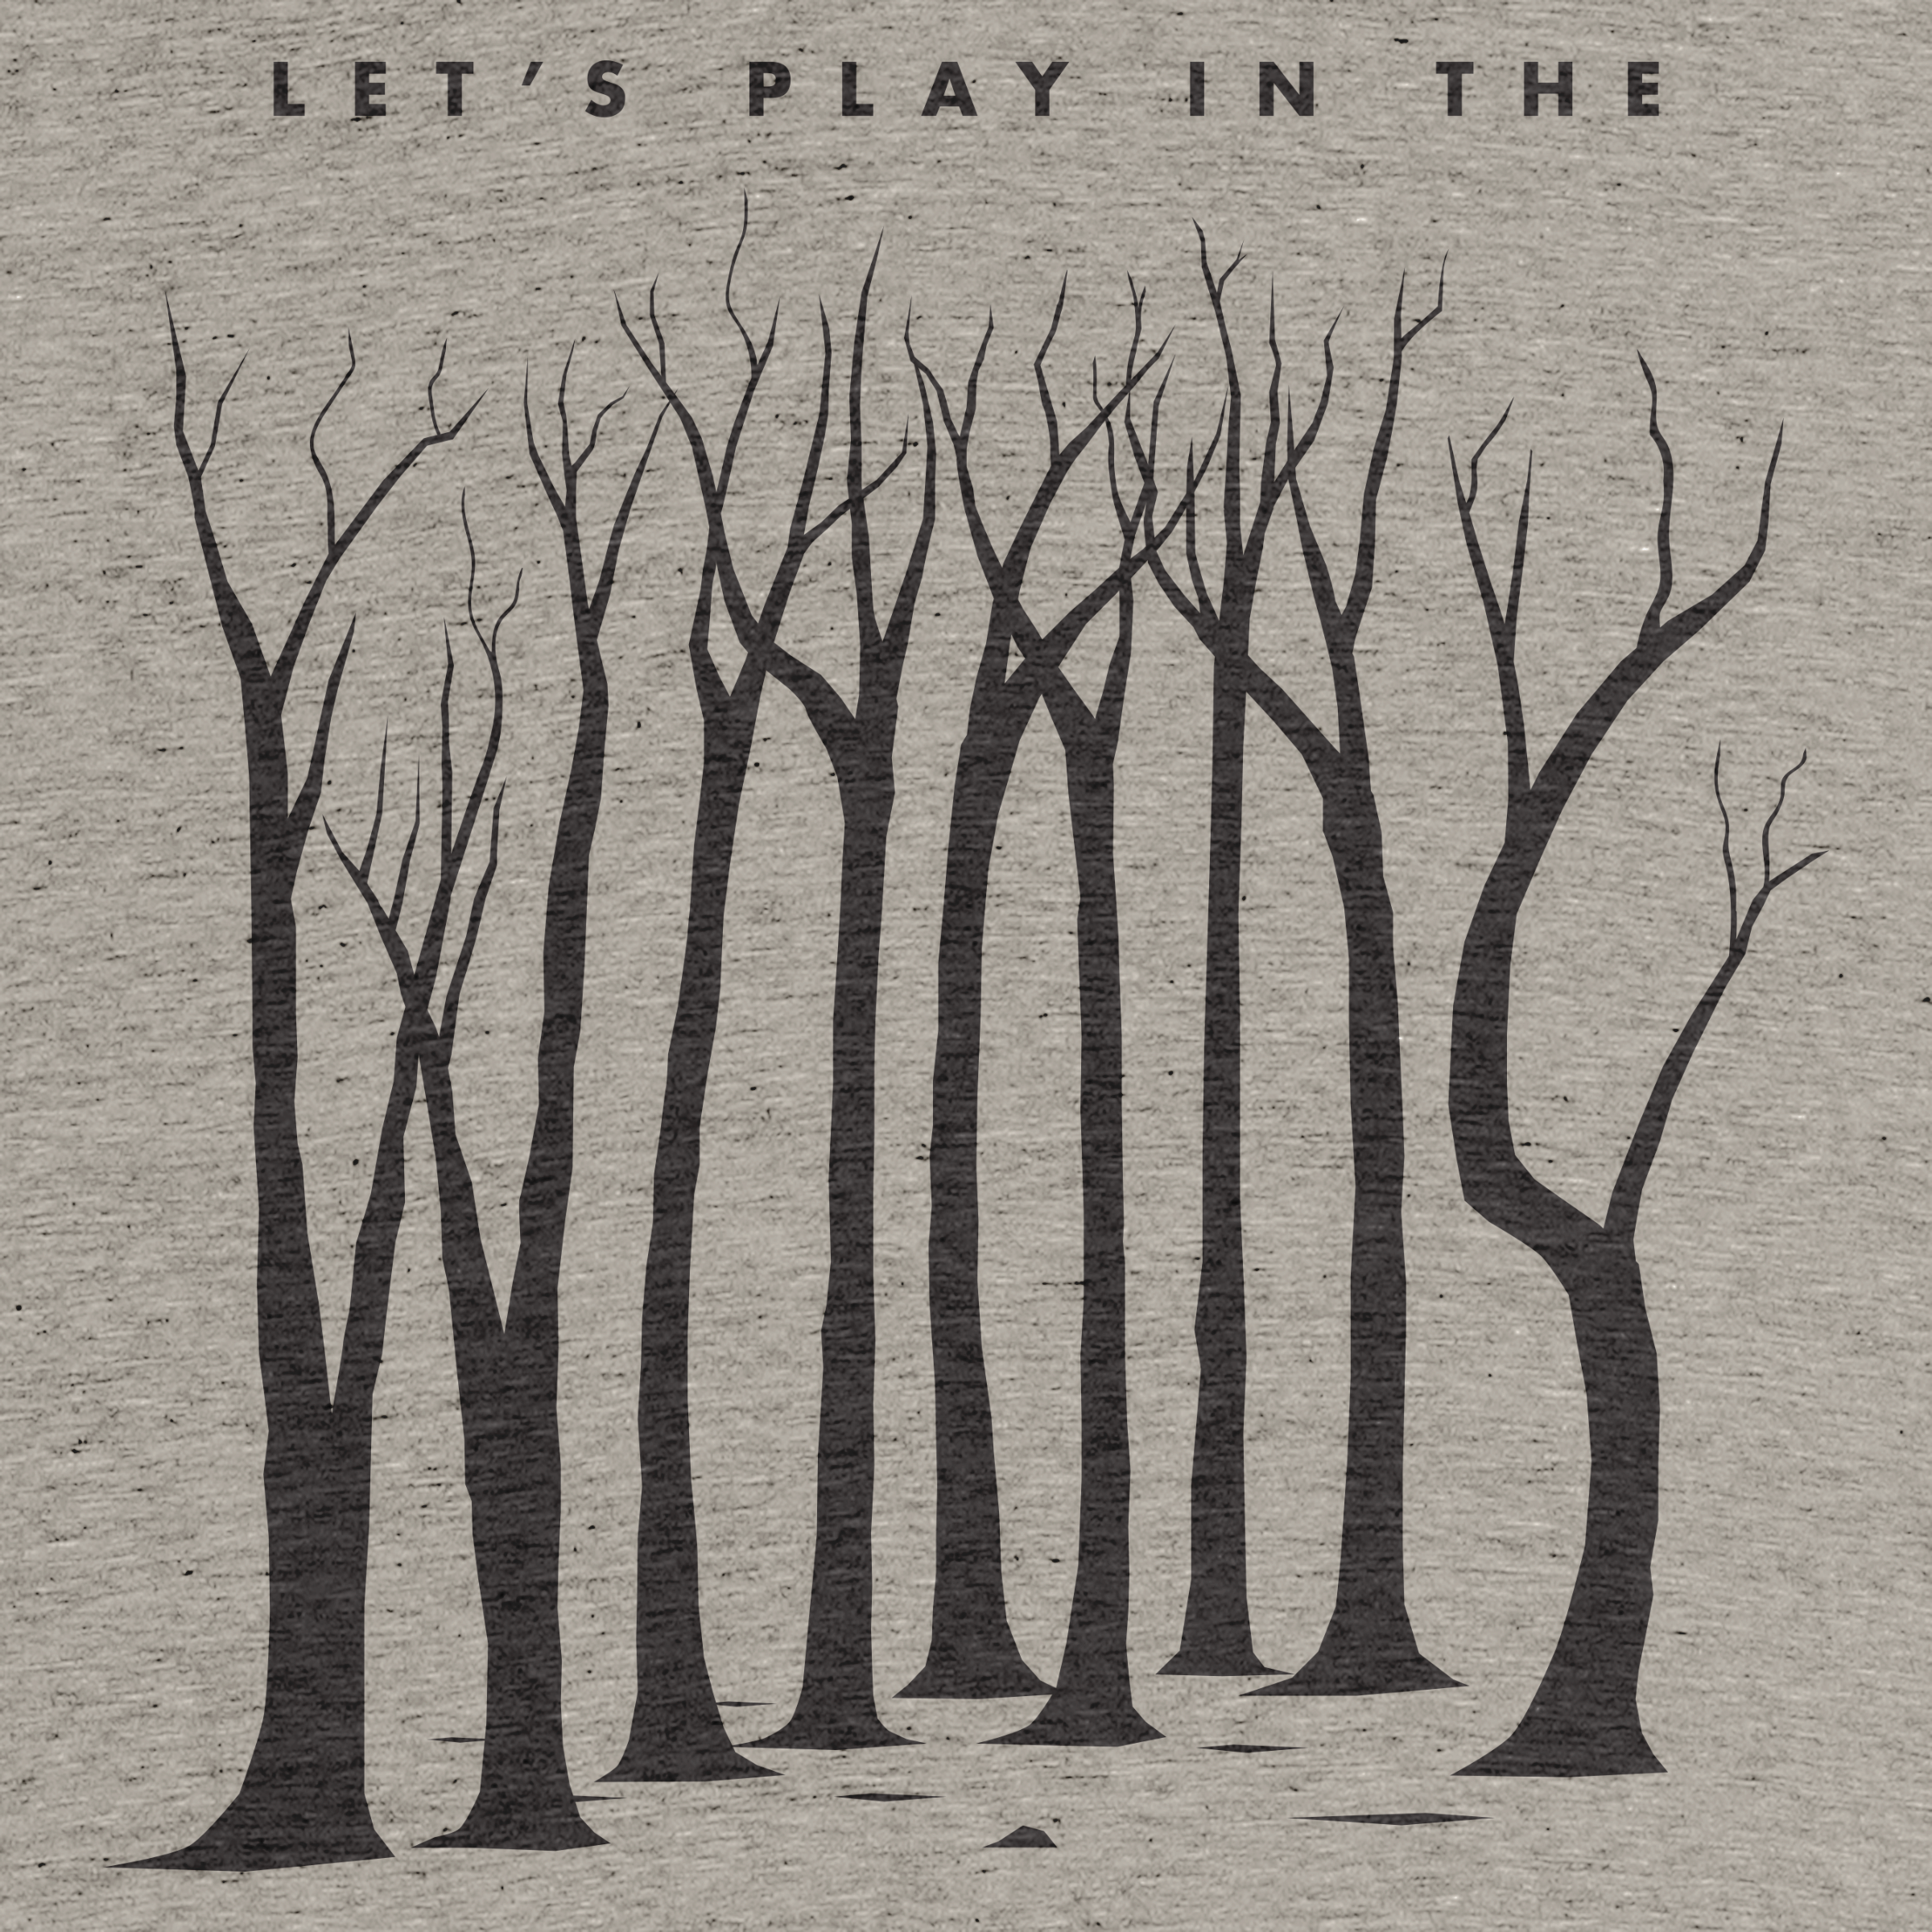 Let's Play in the Woods